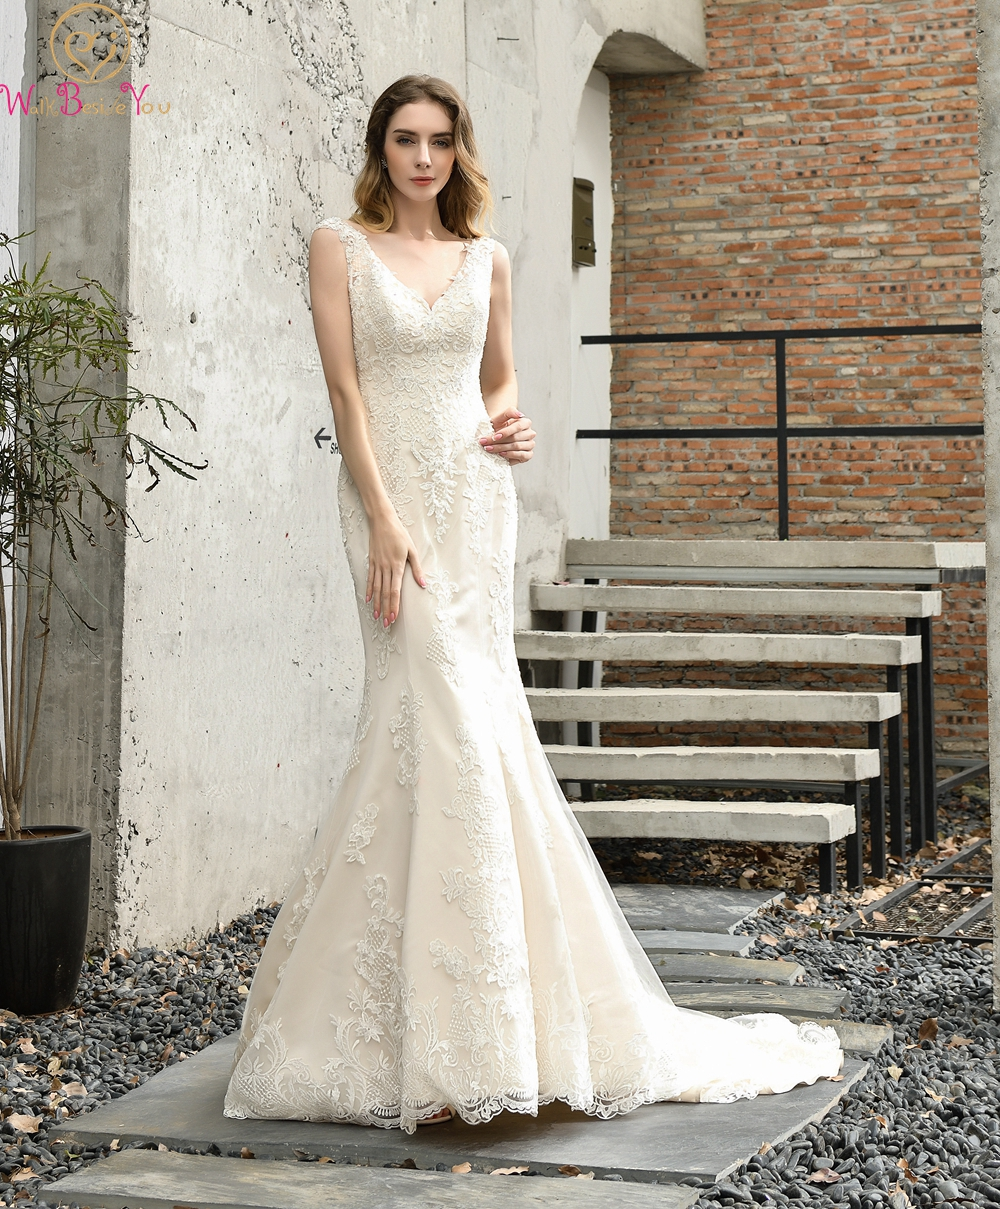 Elegant V-Neck Mermaid Wedding Dresses 2019 Ivory/White Appliques Lace Sleeveless Sexy Hollow Back Bridal Gowns Robe De Mariee